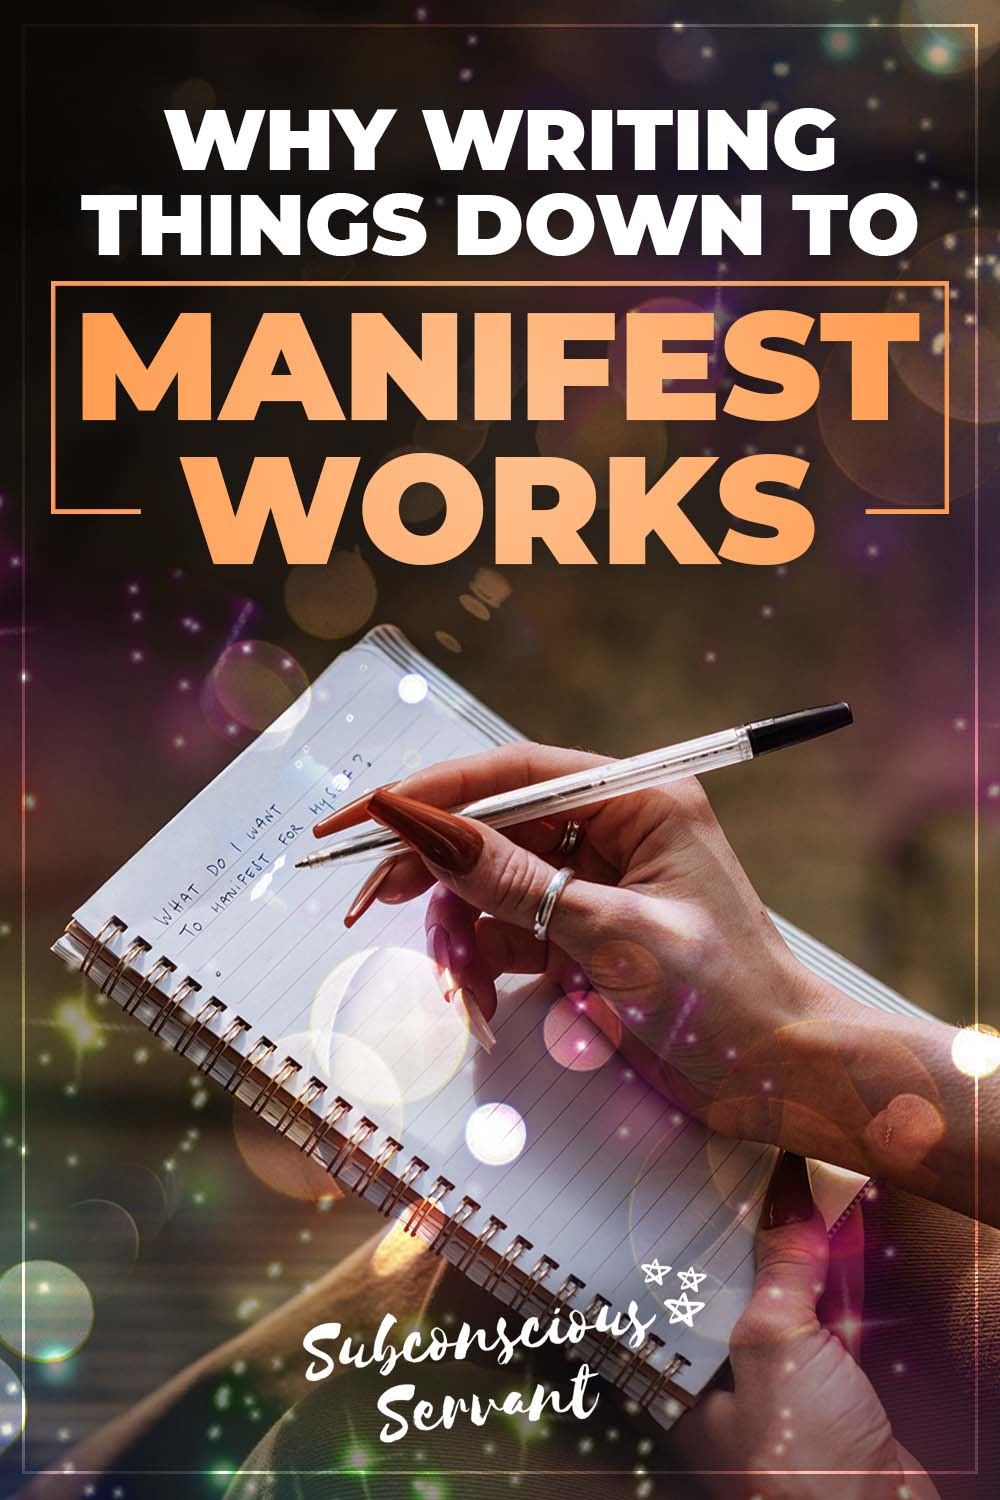 Why Writing Things Down to Manifest Works